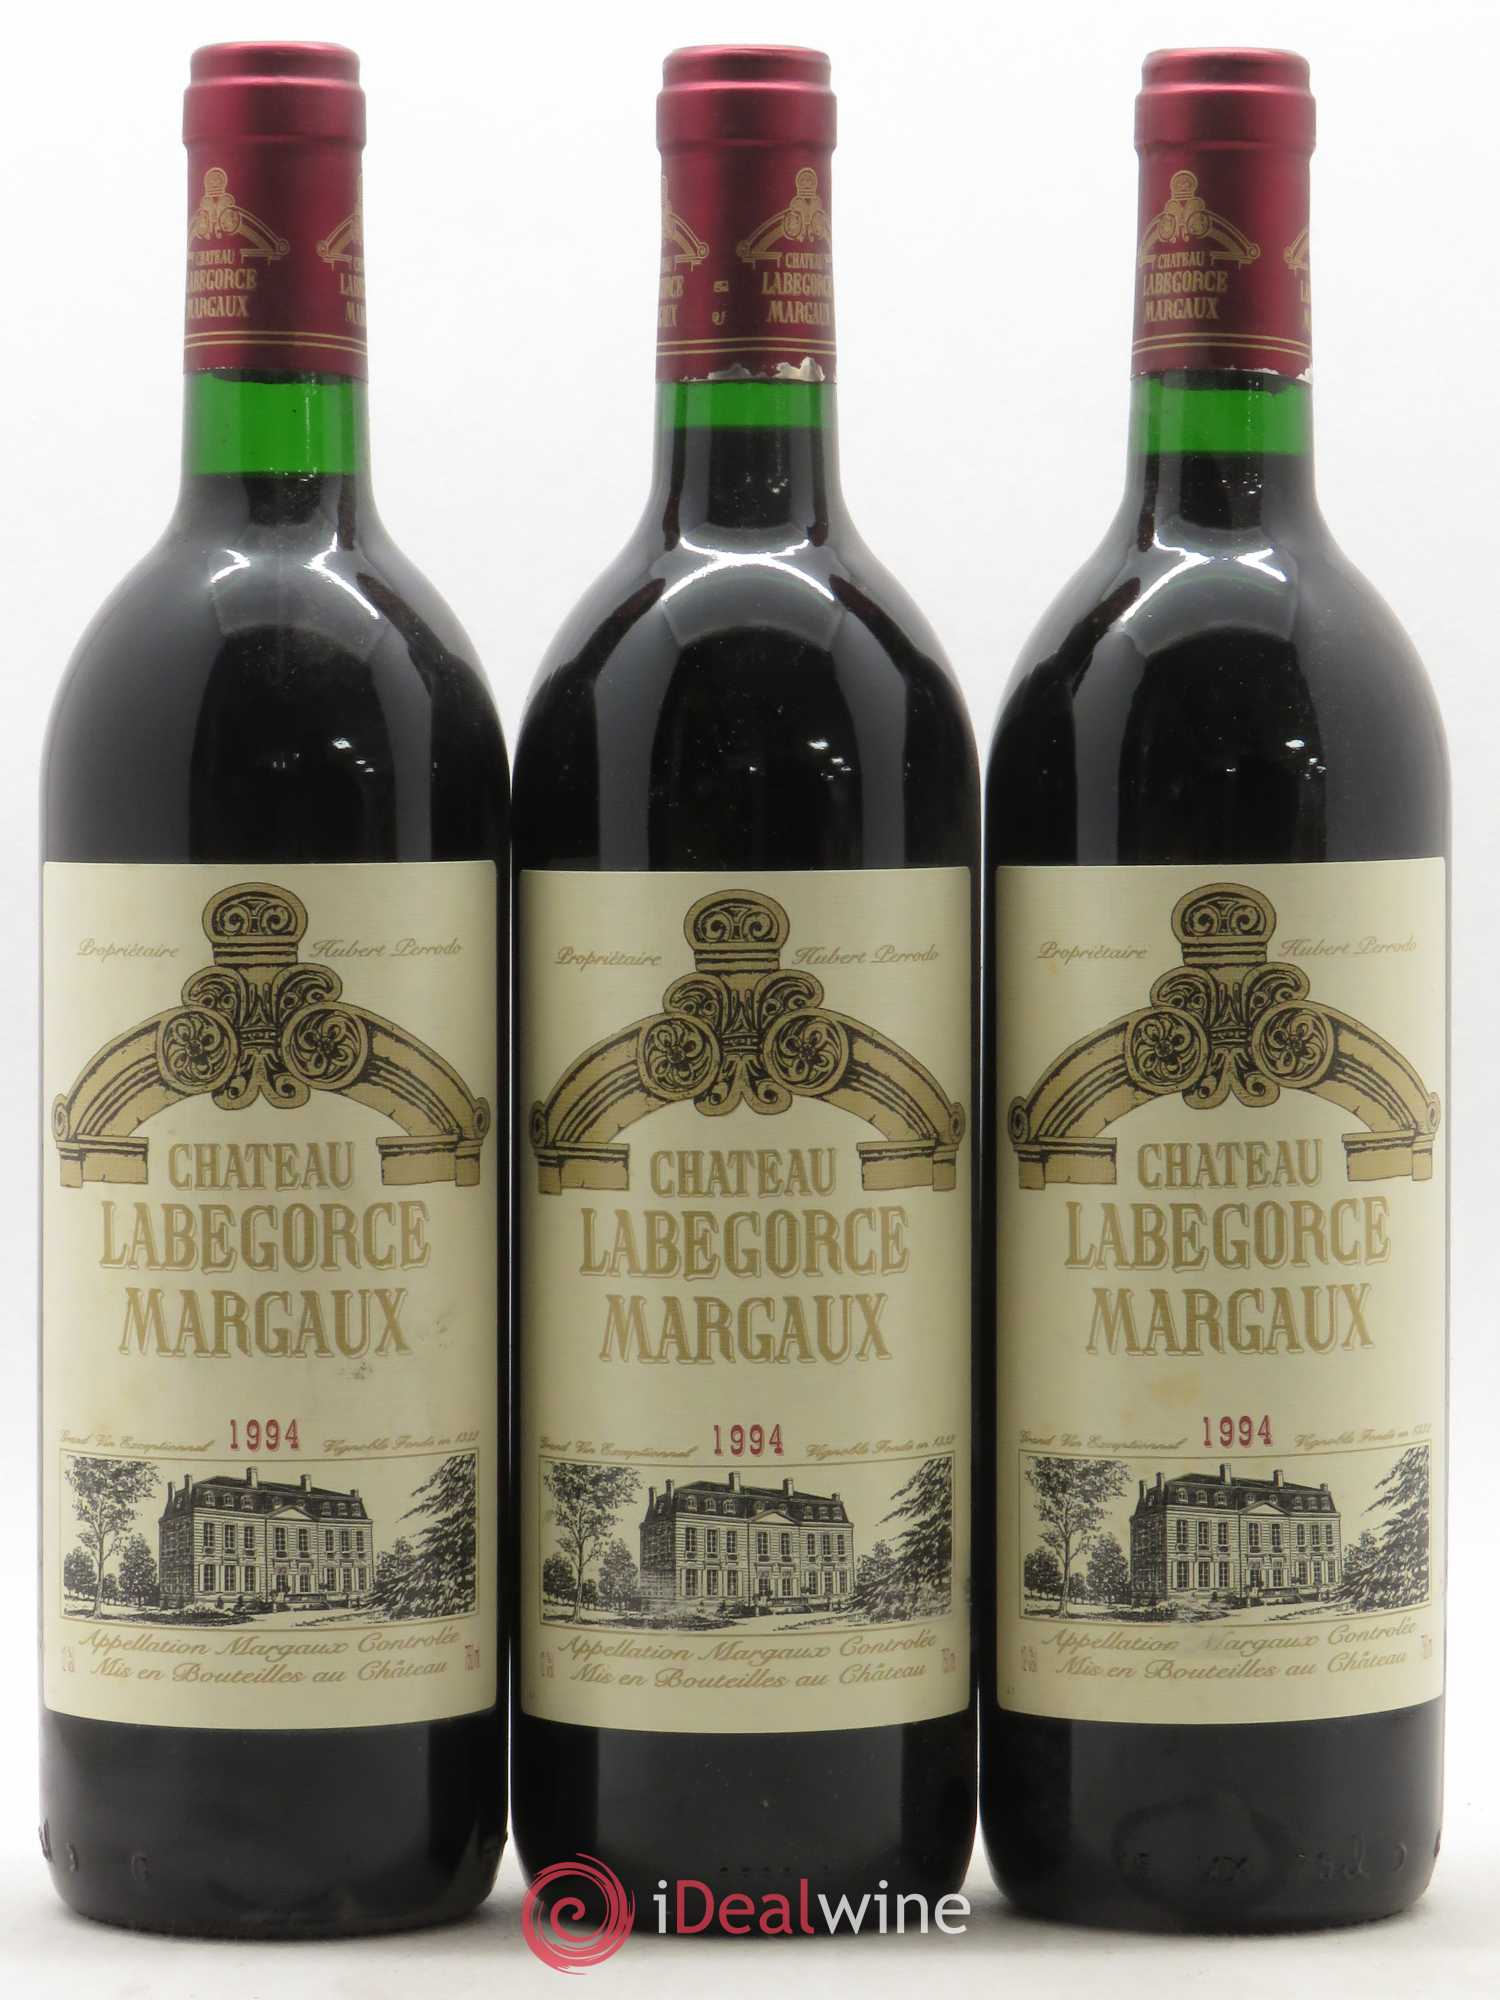 Château Labegorce Cru Bourgeois (no reserve) 1994 - Lot of 3 Bottles